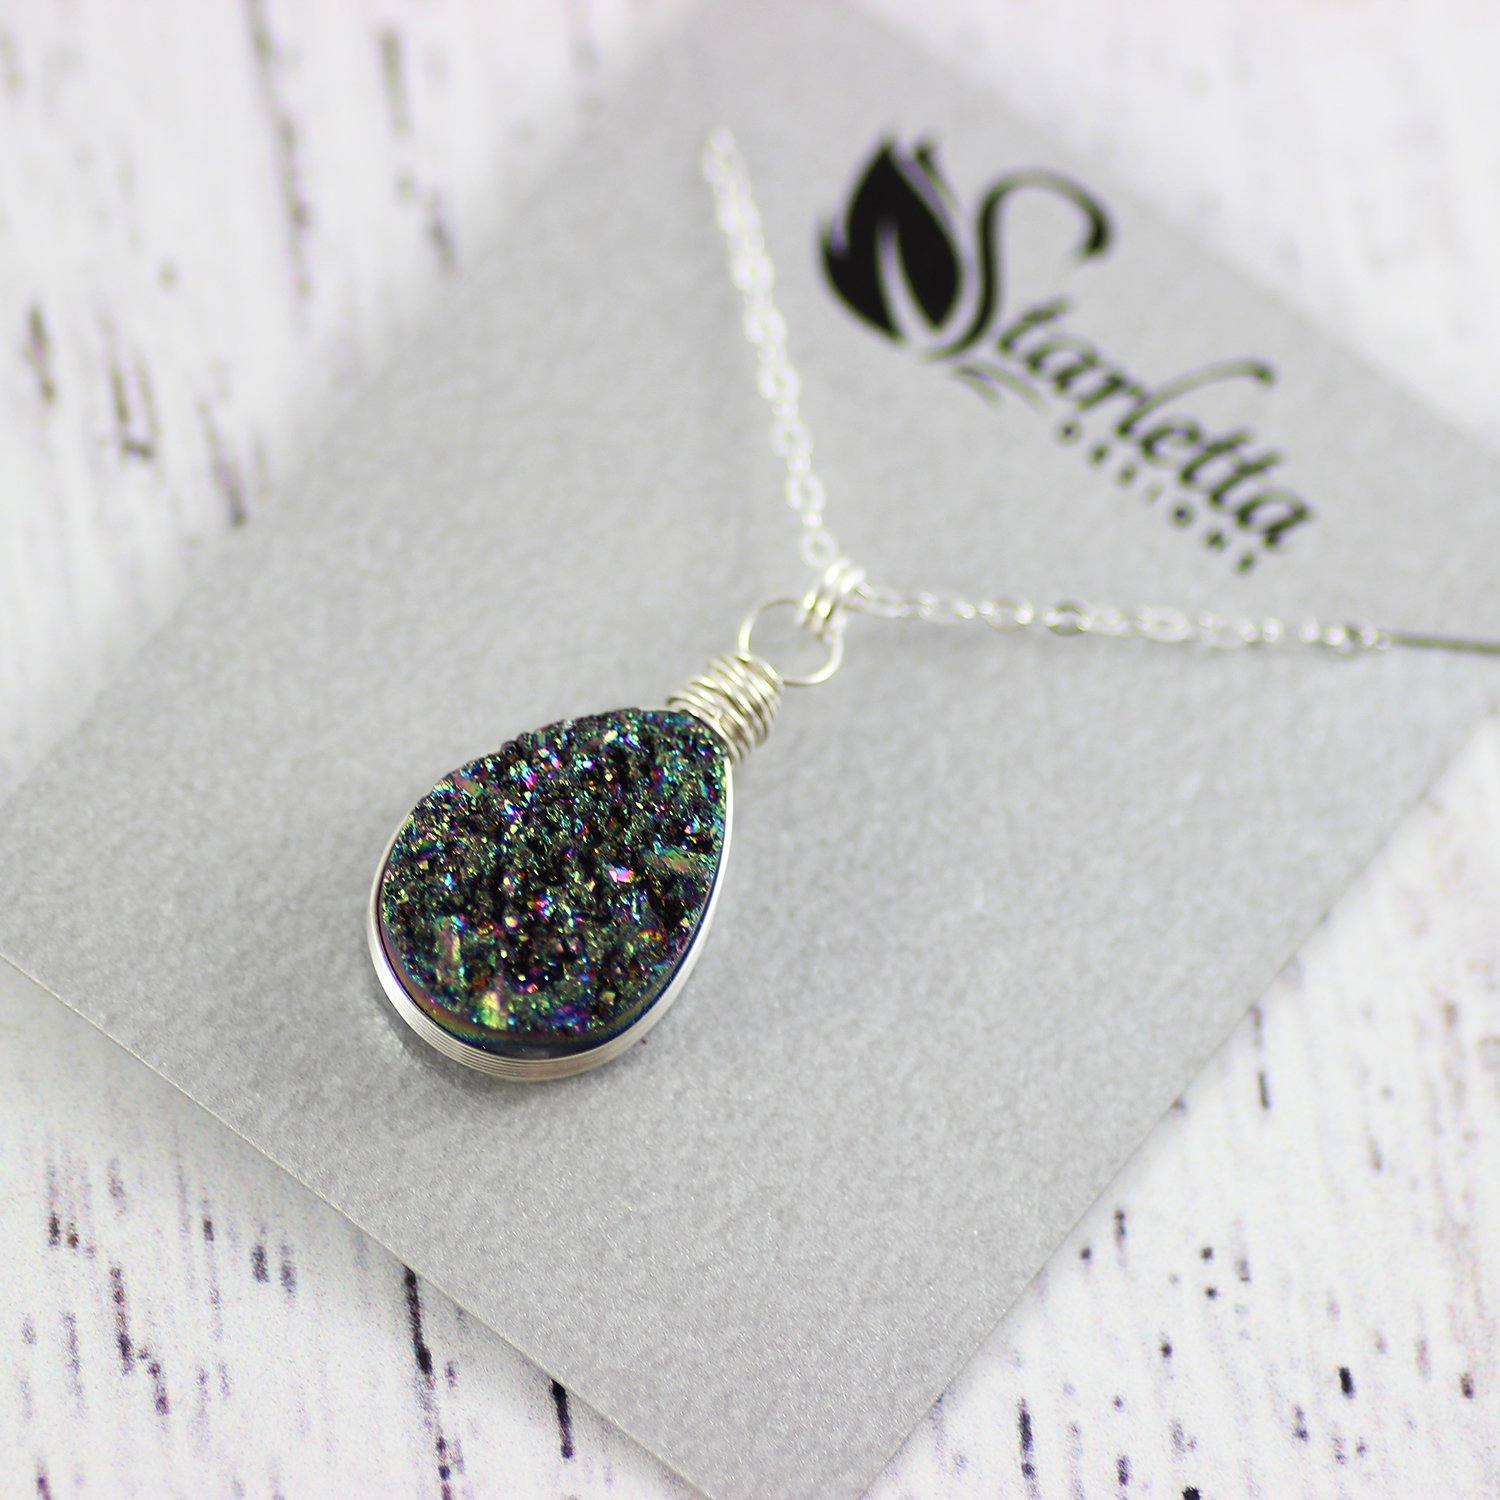 Rainbow Druzy Teardrop Sterling Silver Necklace - 16 Length